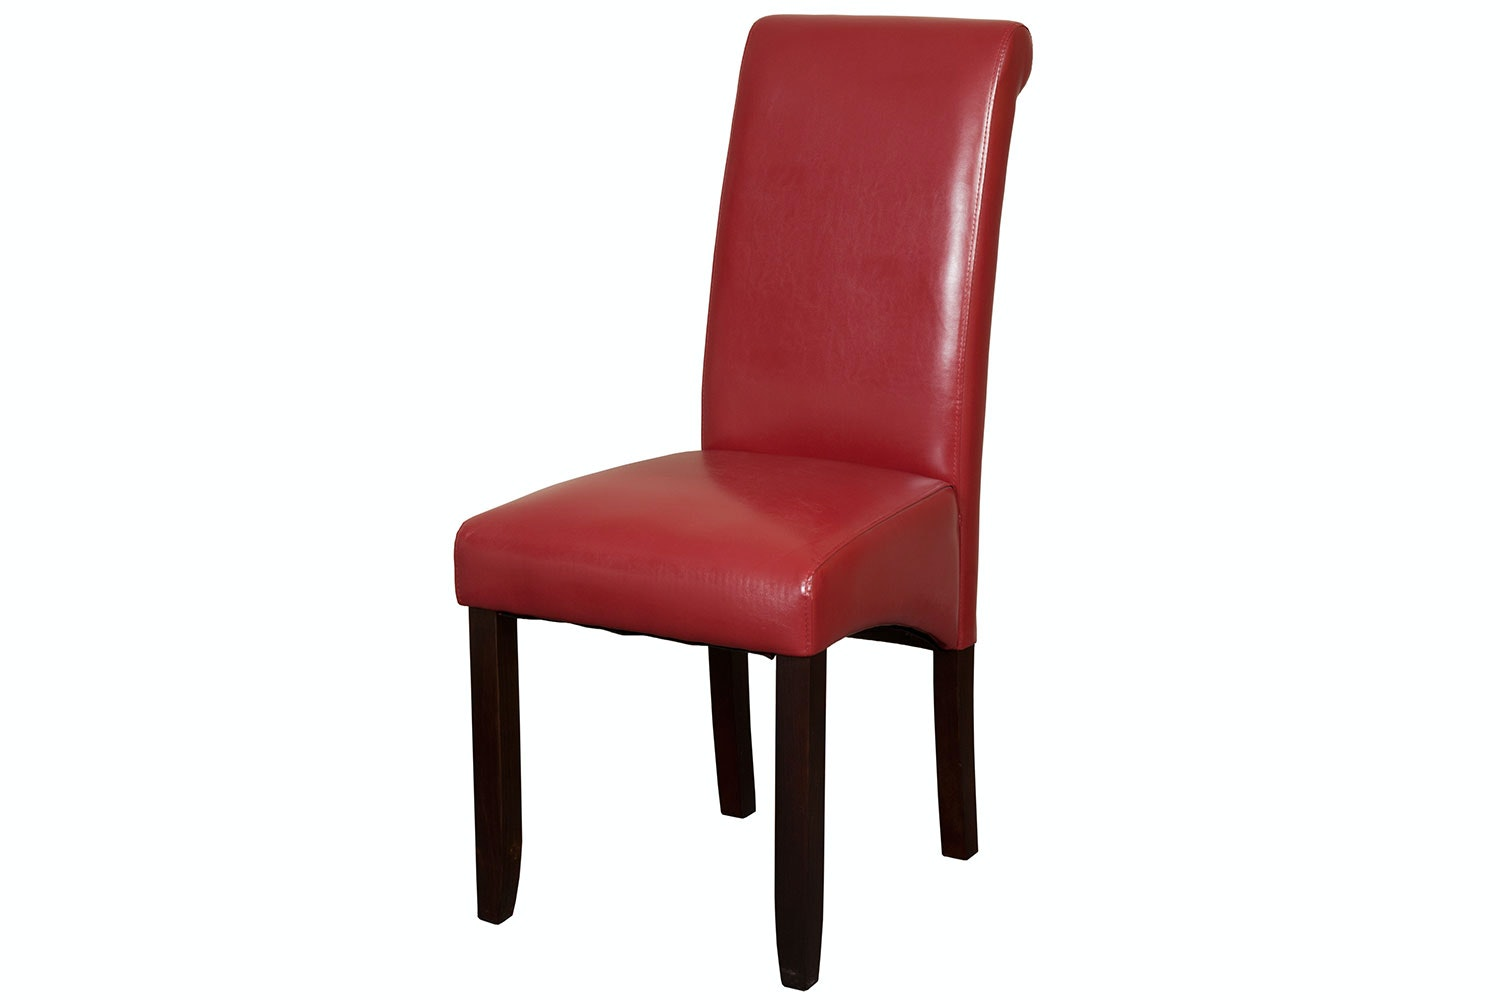 Trafalgar Red Roll Top Dining Chair by Coastwood Furniture